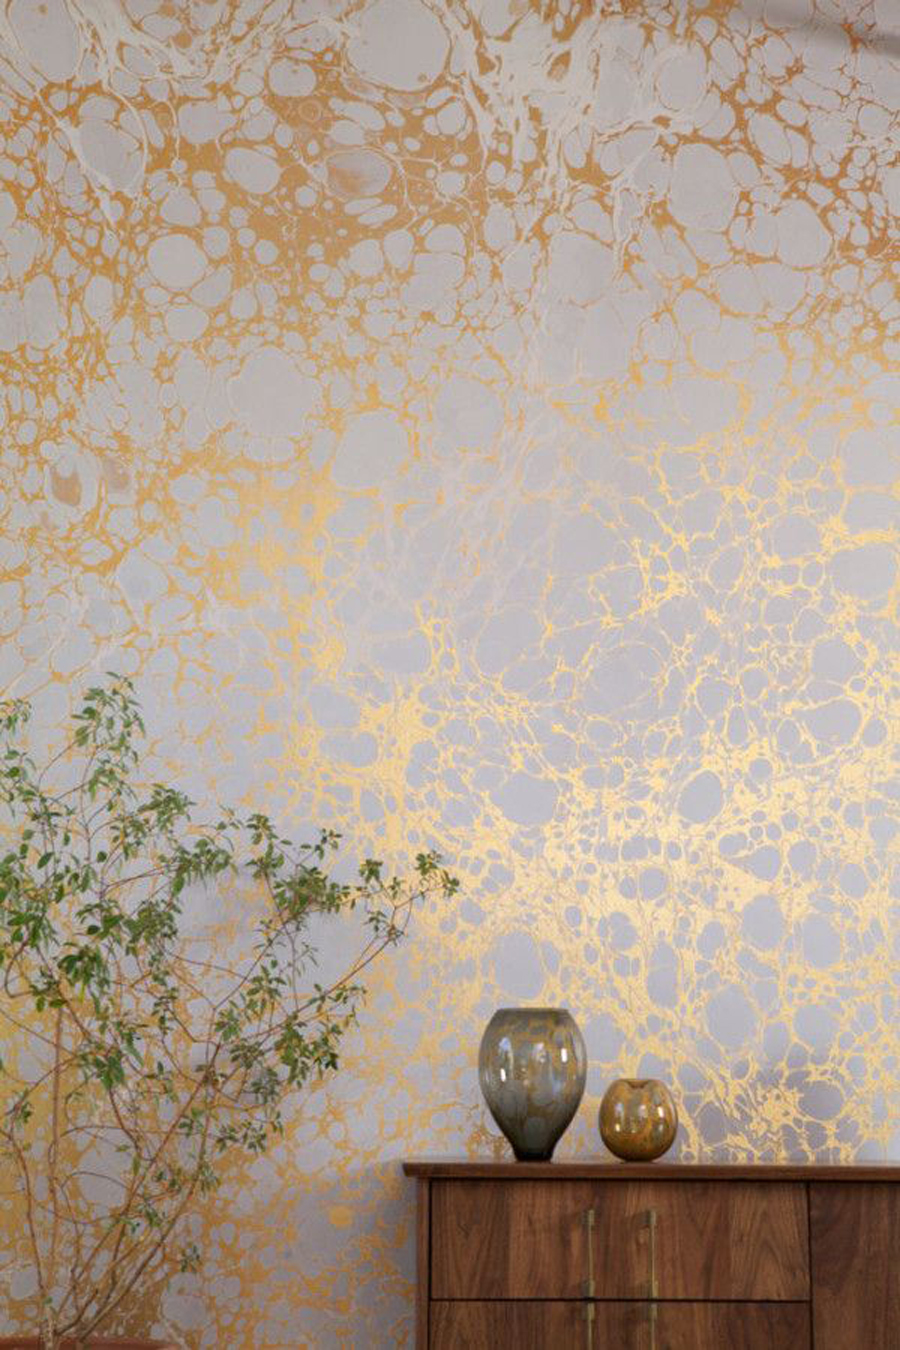 Calico Wallpaper creates space-inspired metallic wallpapers